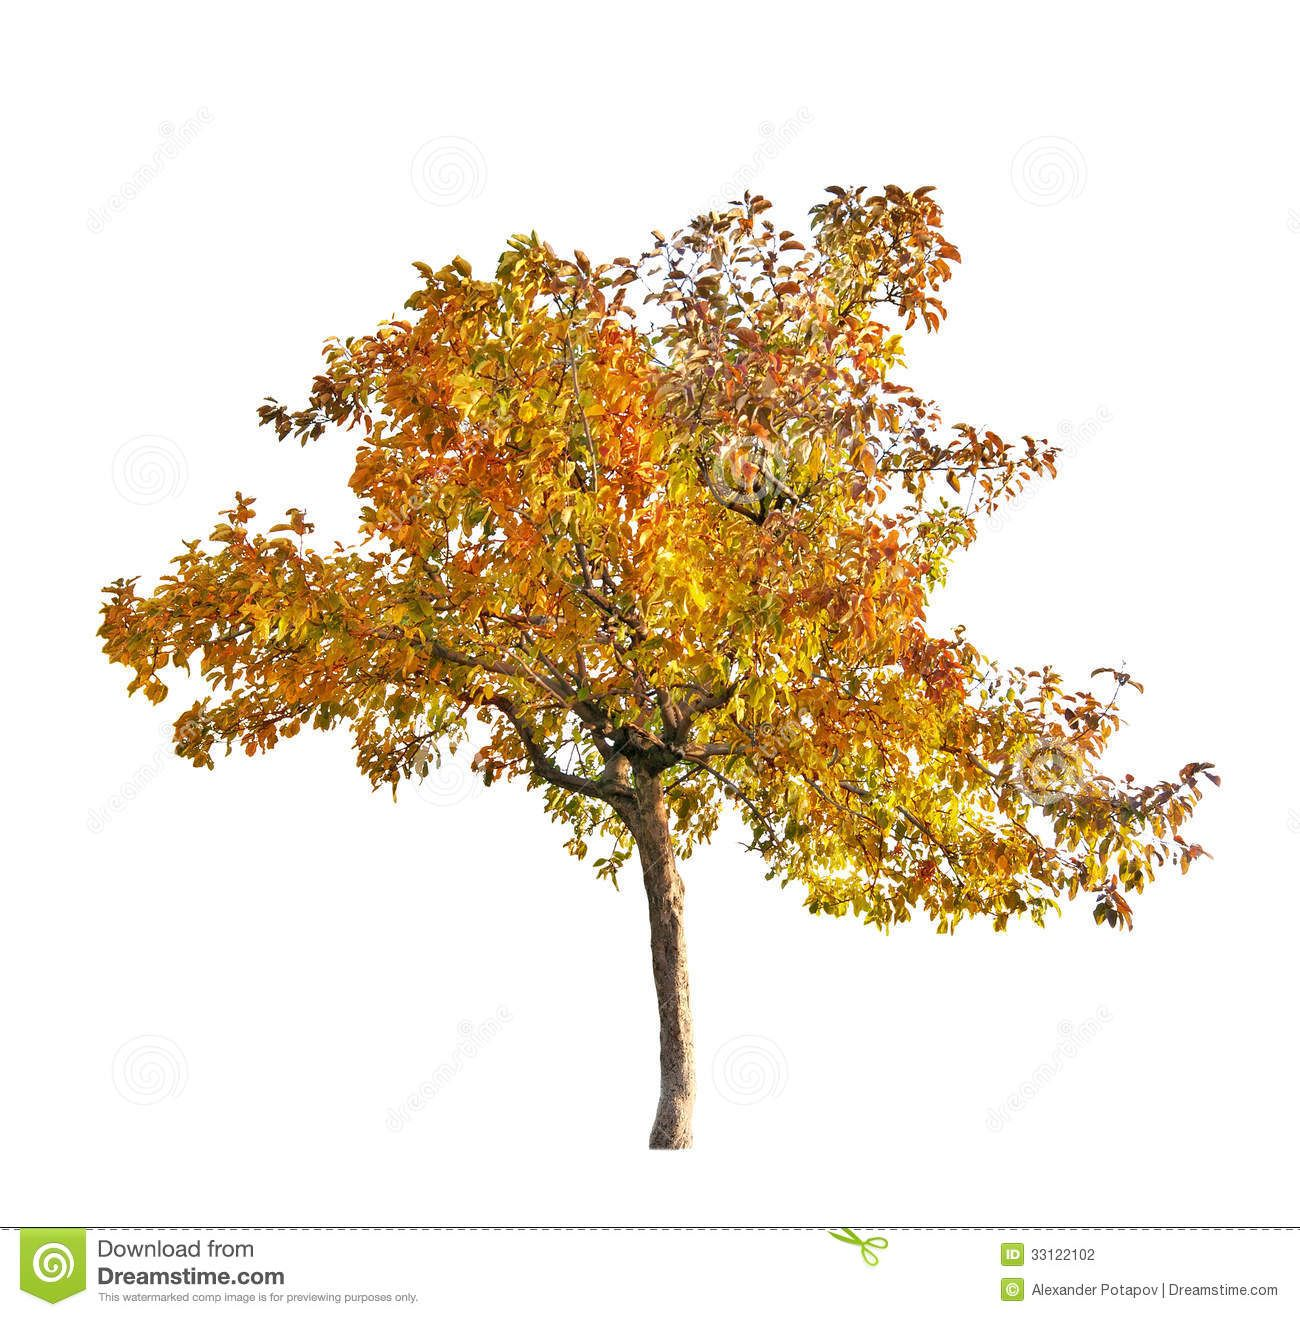 Isolated fall trees google search ref plant cutouts textures pinterest fall trees - Planting fruit trees in autumn ...